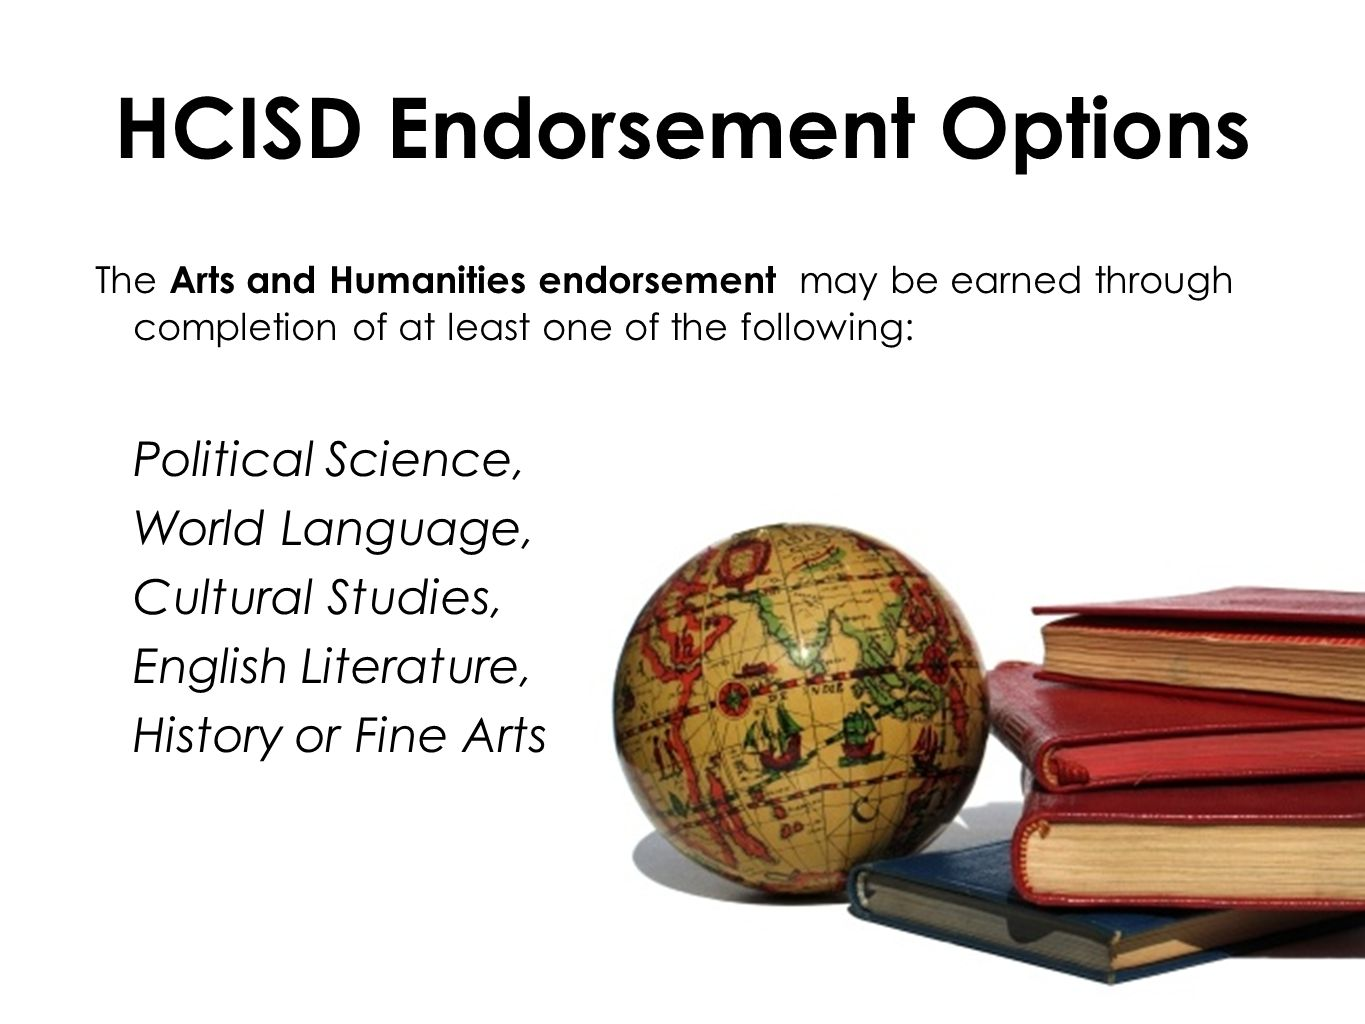 HCISD Endorsement Options The Arts and Humanities endorsement may be earned through completion of at least one of the following: Political Science, World Language, Cultural Studies, English Literature, History or Fine Arts